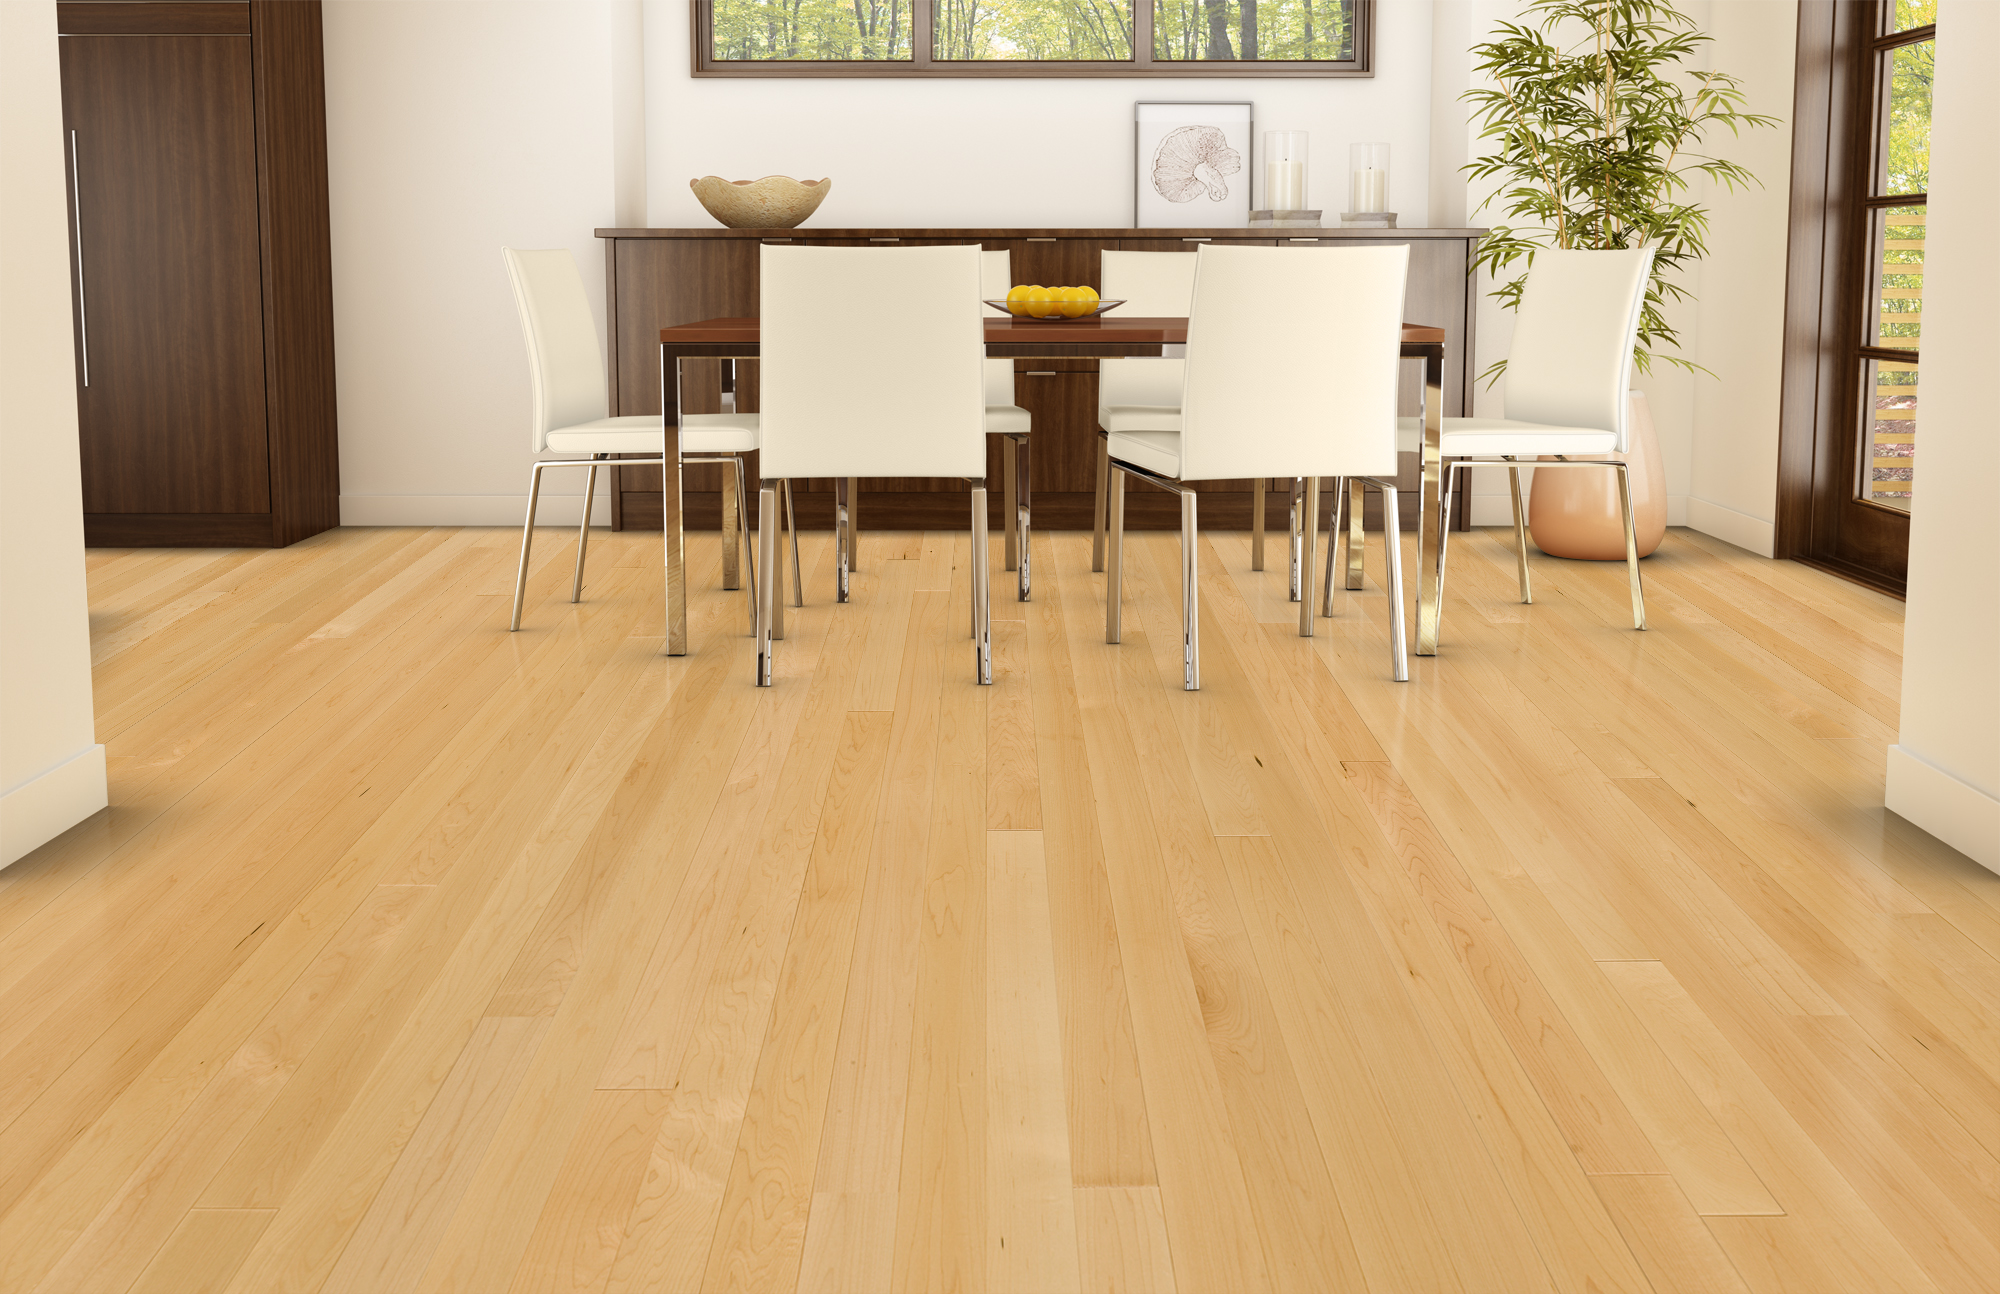 contemporary-dining-room-hardwood-flooring-hard-maple-natural-select-better-essential-lauzon.jpg